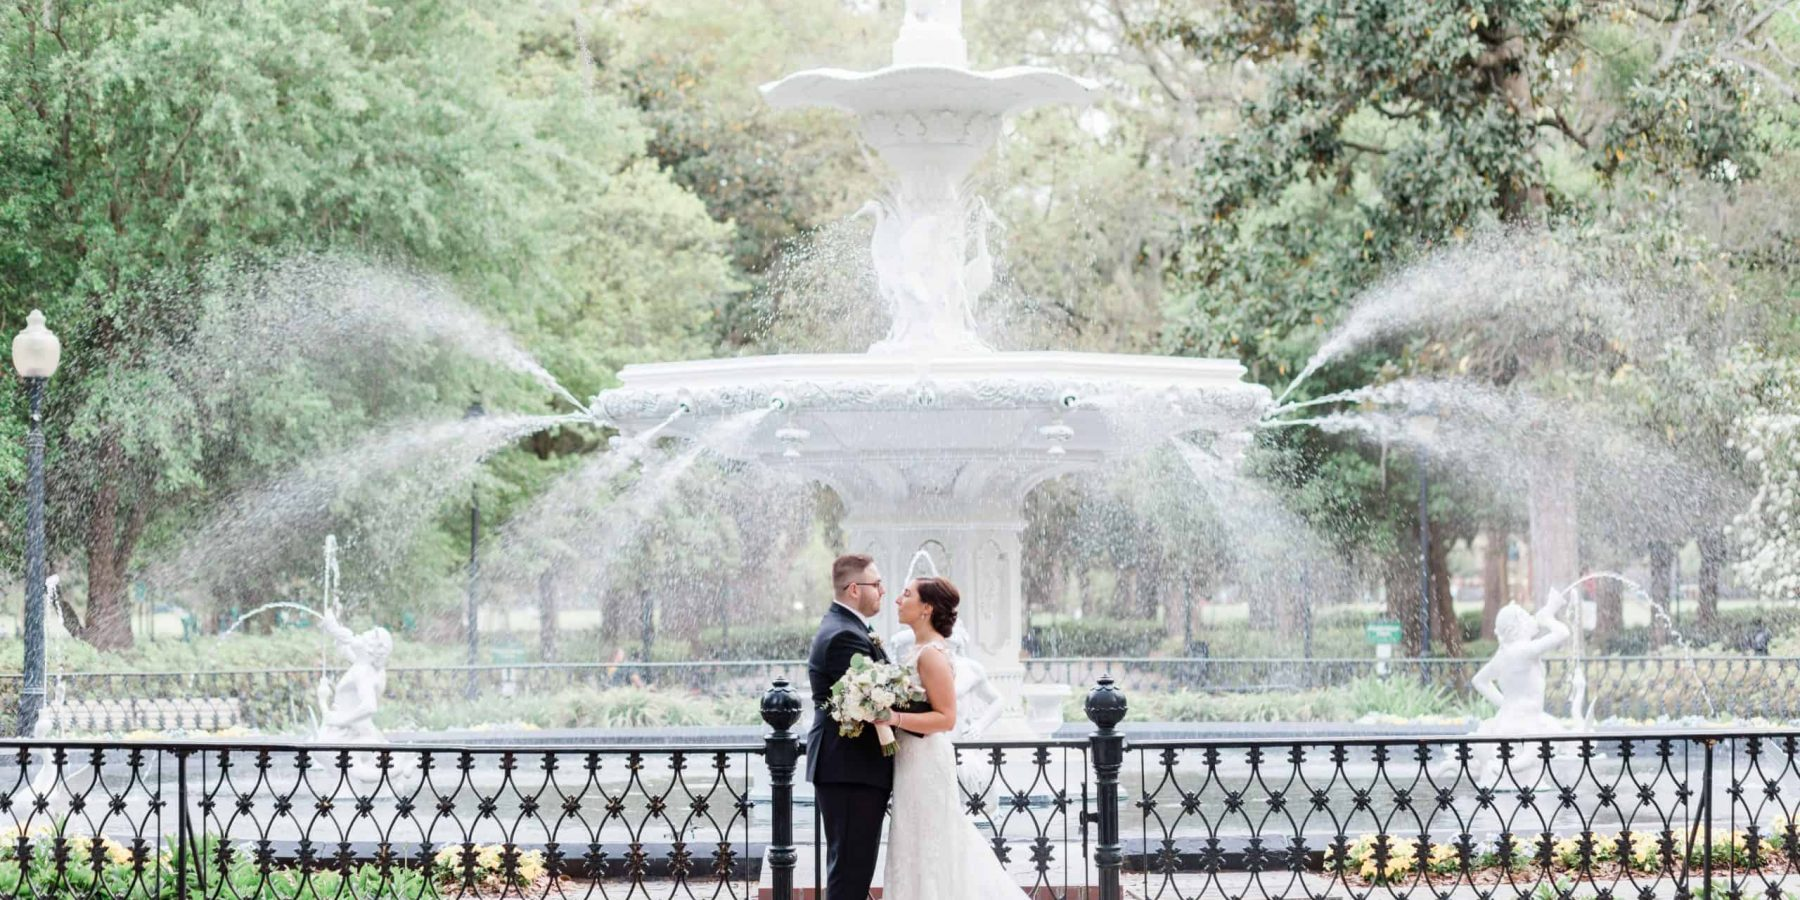 Savannah Intimate Destination Weddings: 13 Real Wedding Stories